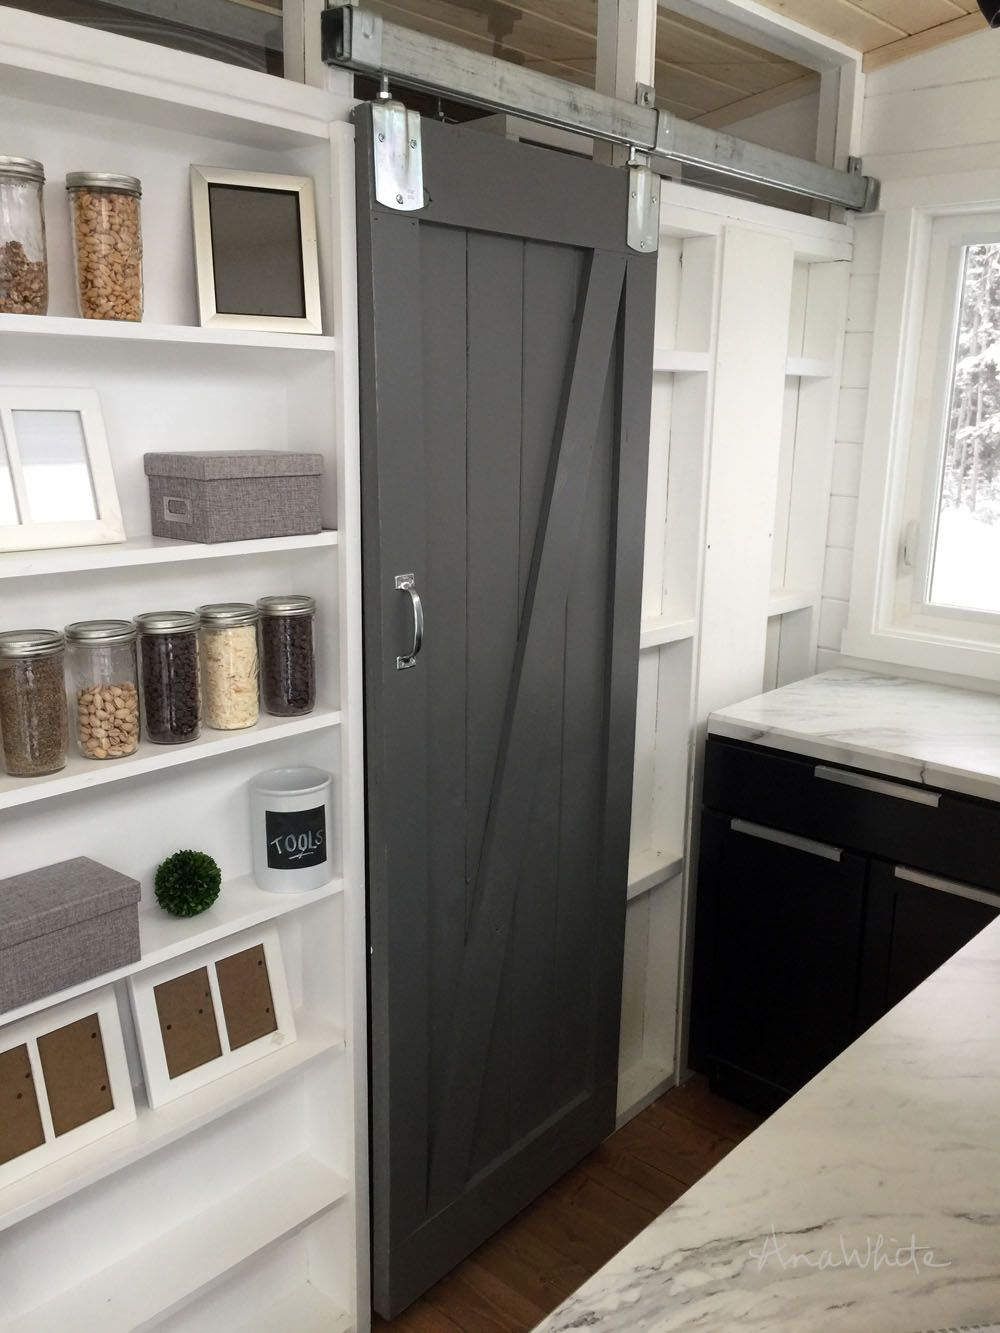 Diy Barn Door For Tiny House With Images Barn Door Furniture Diy House Projects Diy Barn Door